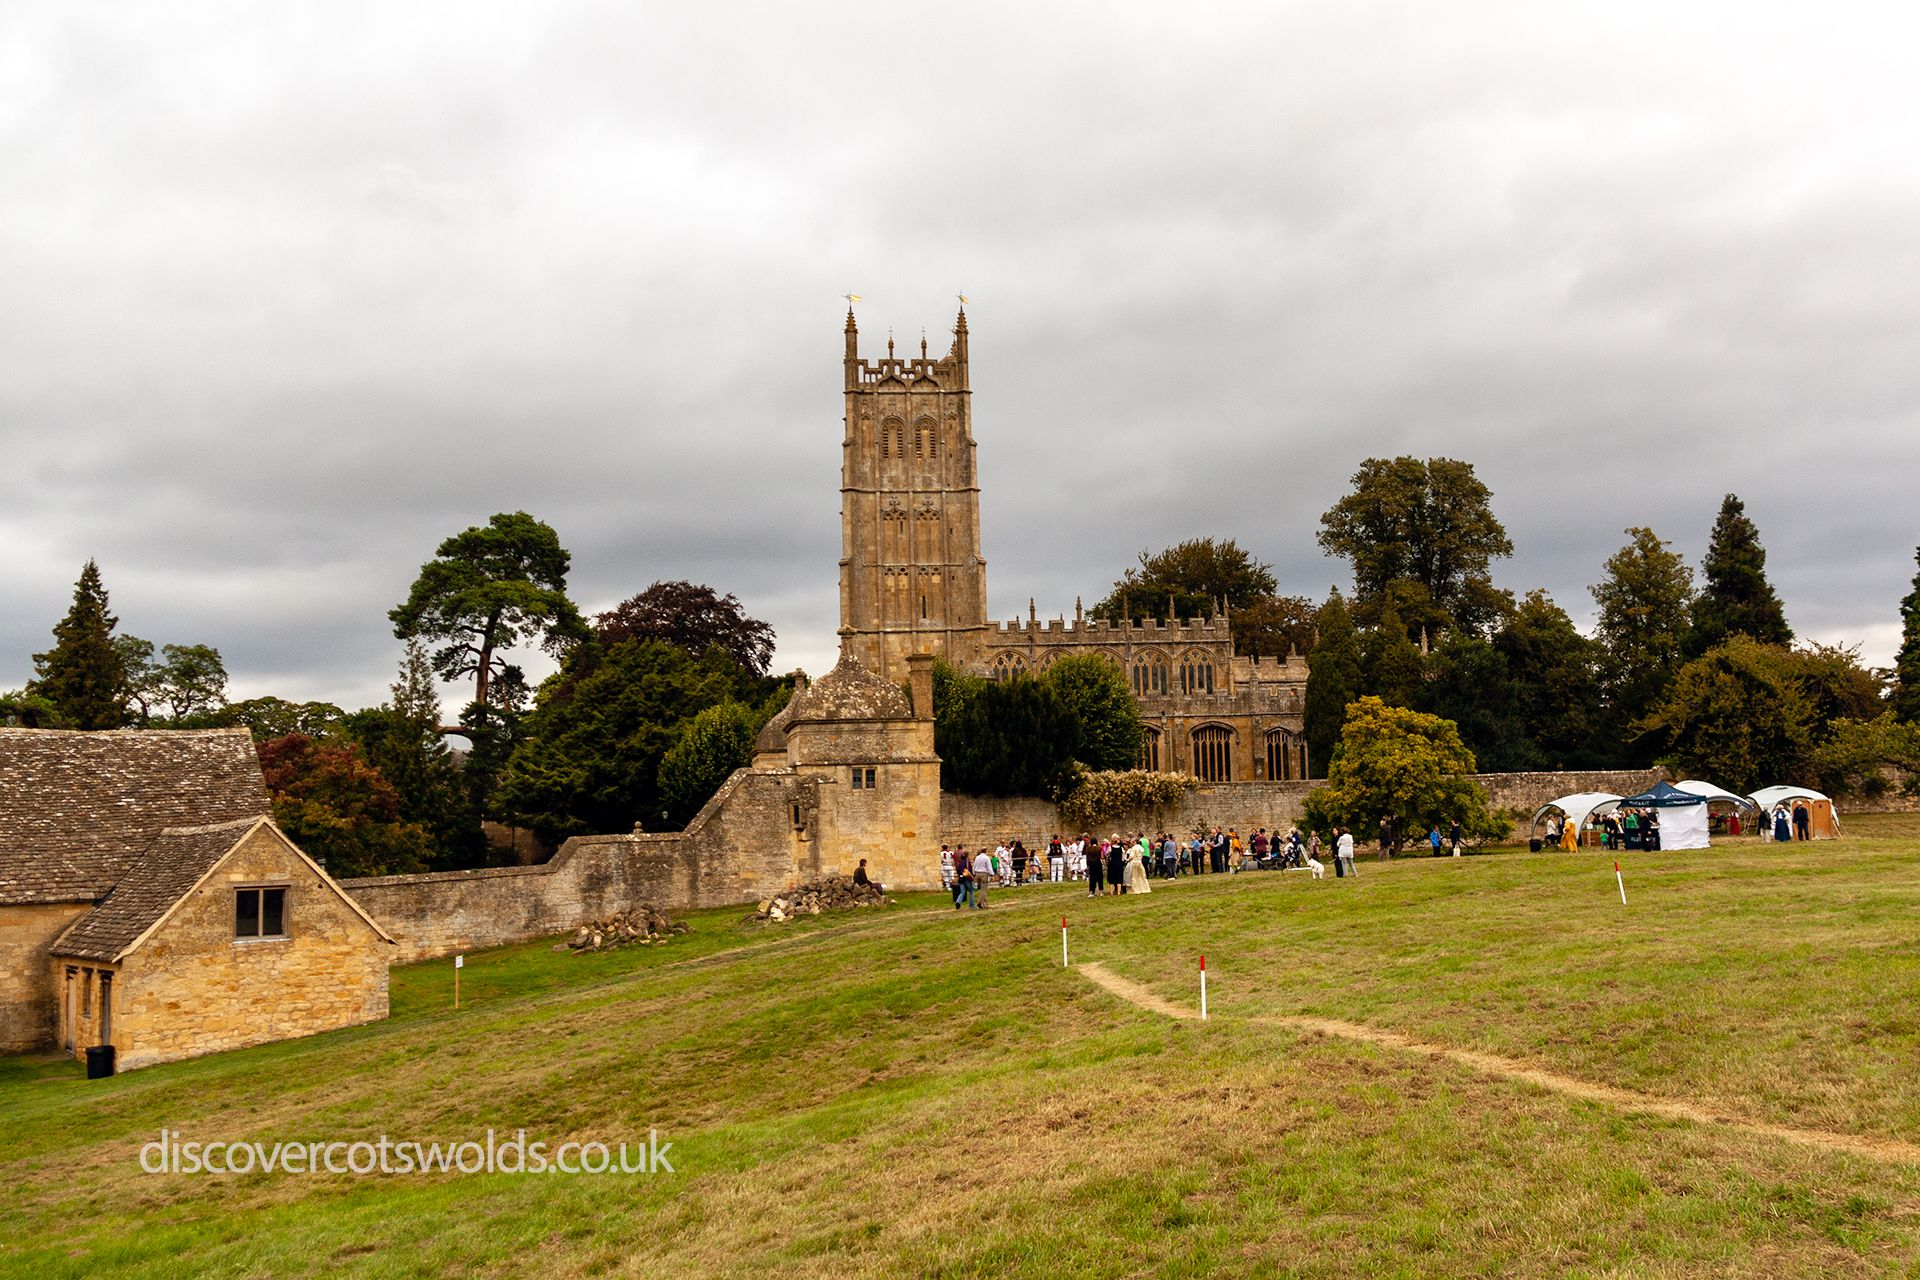 St James' Church in Chipping Campden